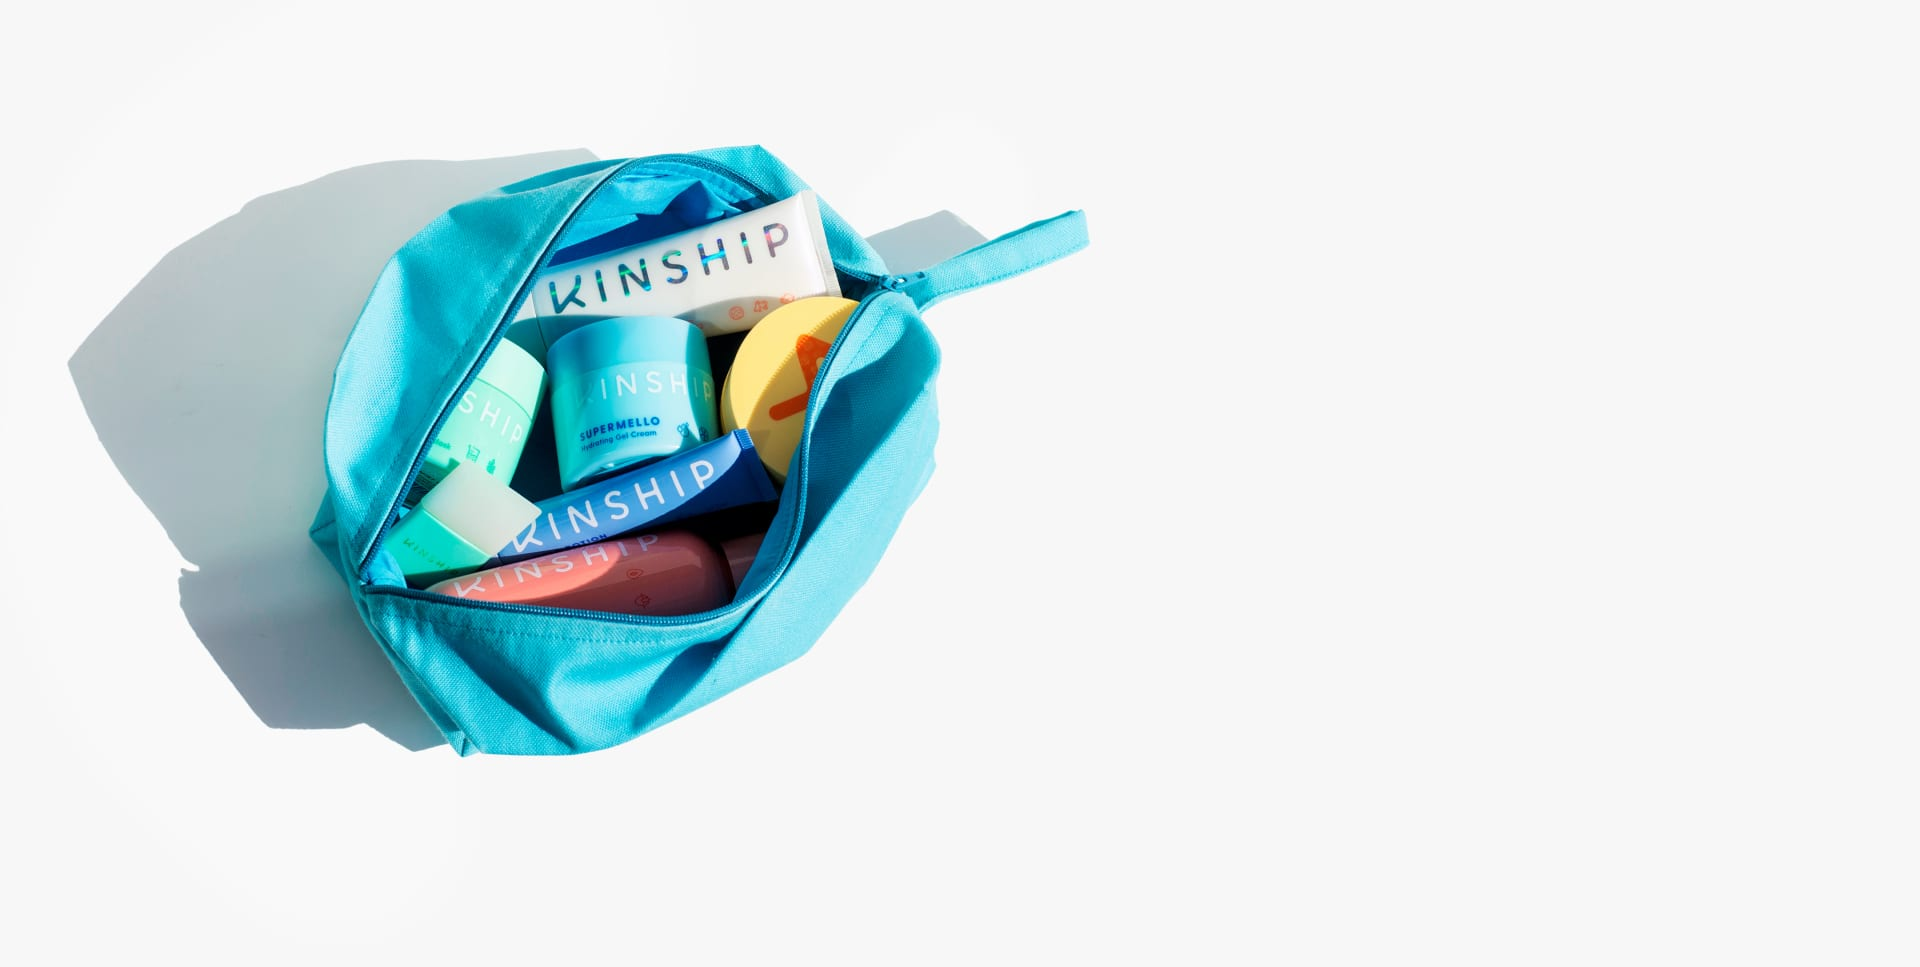 On the Glow Dopp Kit filled with Kinship products